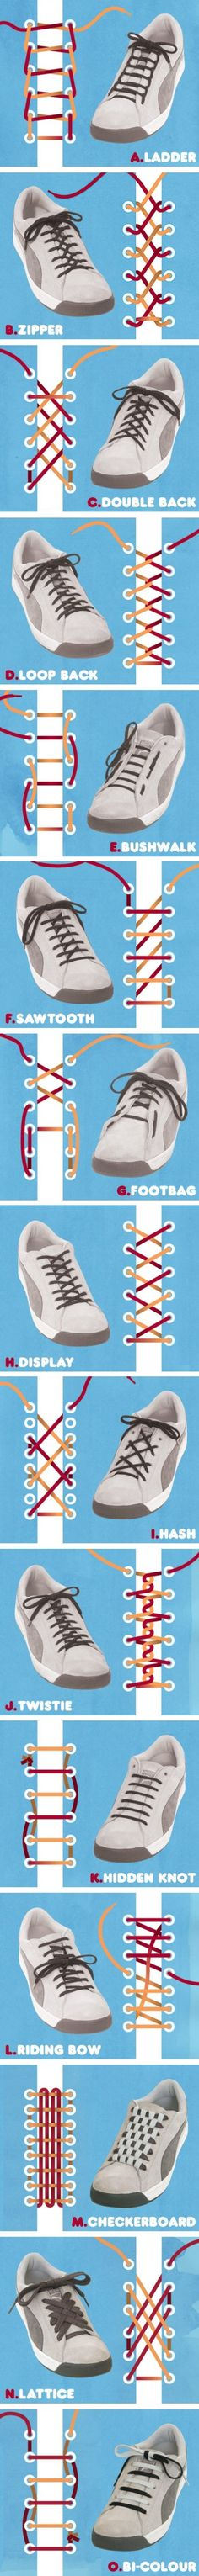 Different spiffy ways to tie your shoes.